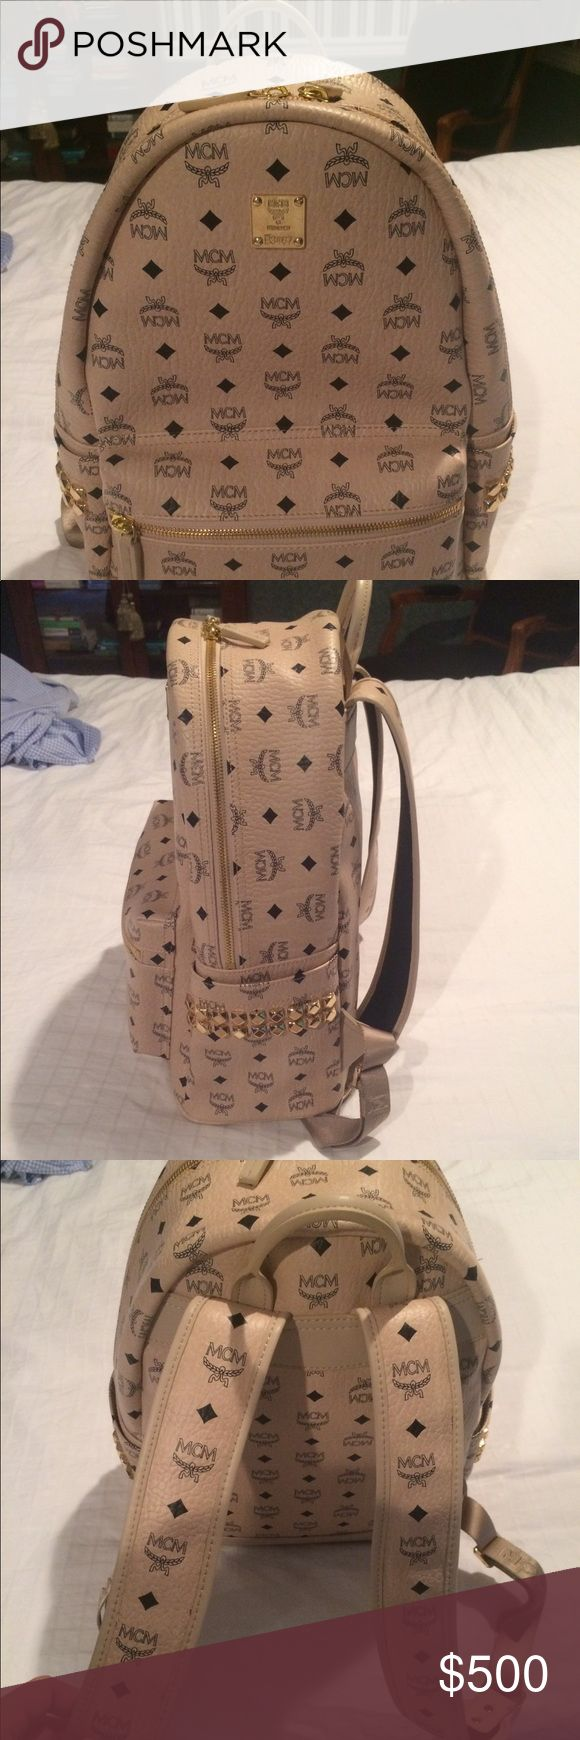 MCM Stark backpack in beige Beautiful MCM Stark backpack in beige, there is a ton of terrible fakes on posh, but this is 100% authentic. Price negotiable to a certain point. Plz serious buyers only MCM Bags Backpacks